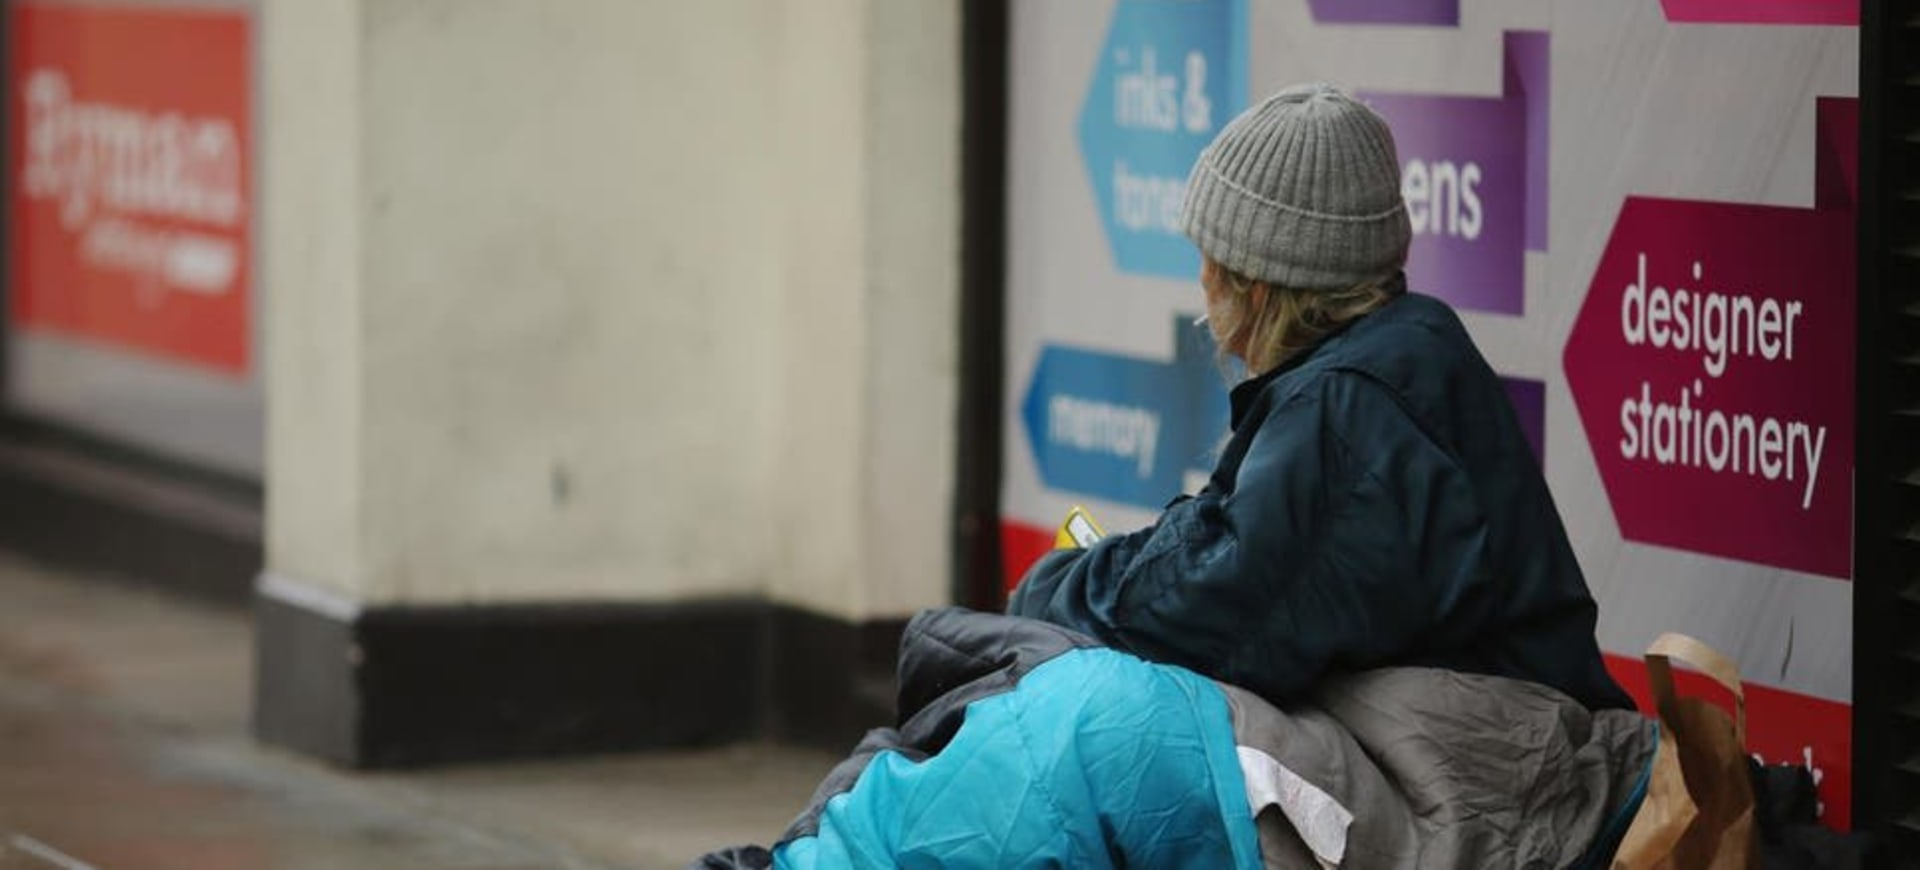 Homeless people moved out of hotels prompting fears hundreds will be forced to return to streets